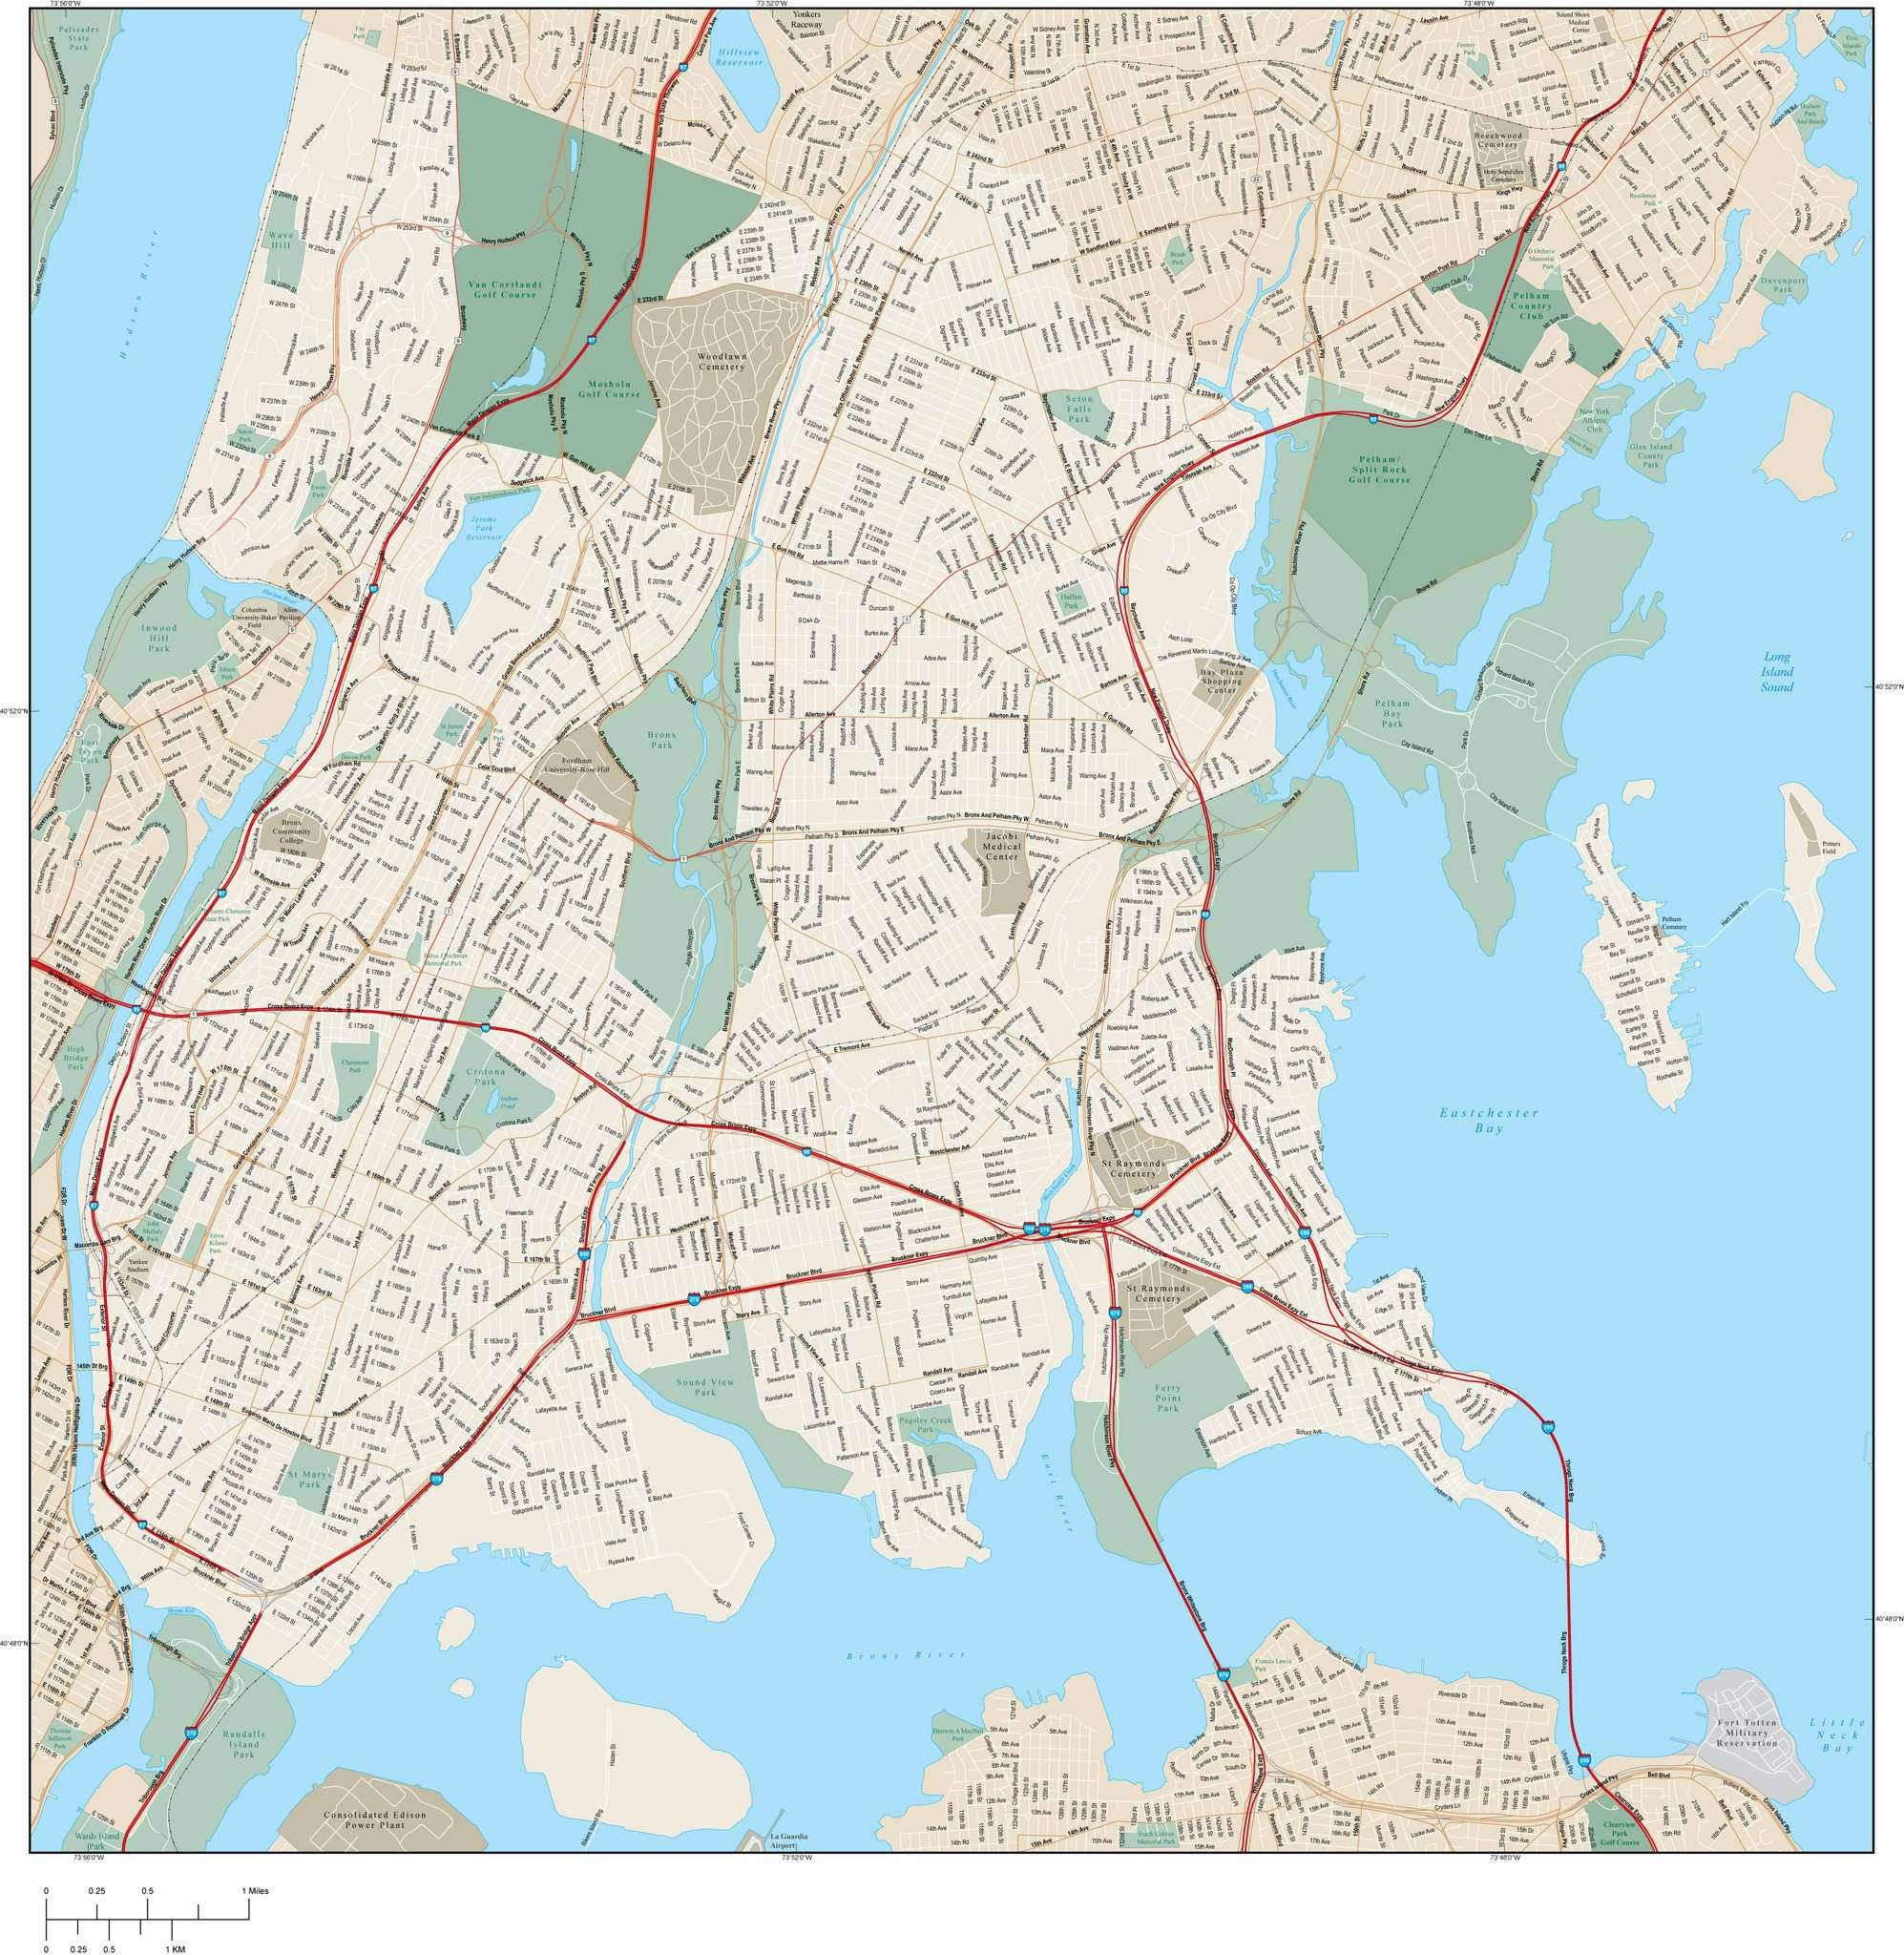 Map Of New York Bronx.Bronx New York City Map 81 Square Miles With Local Streets